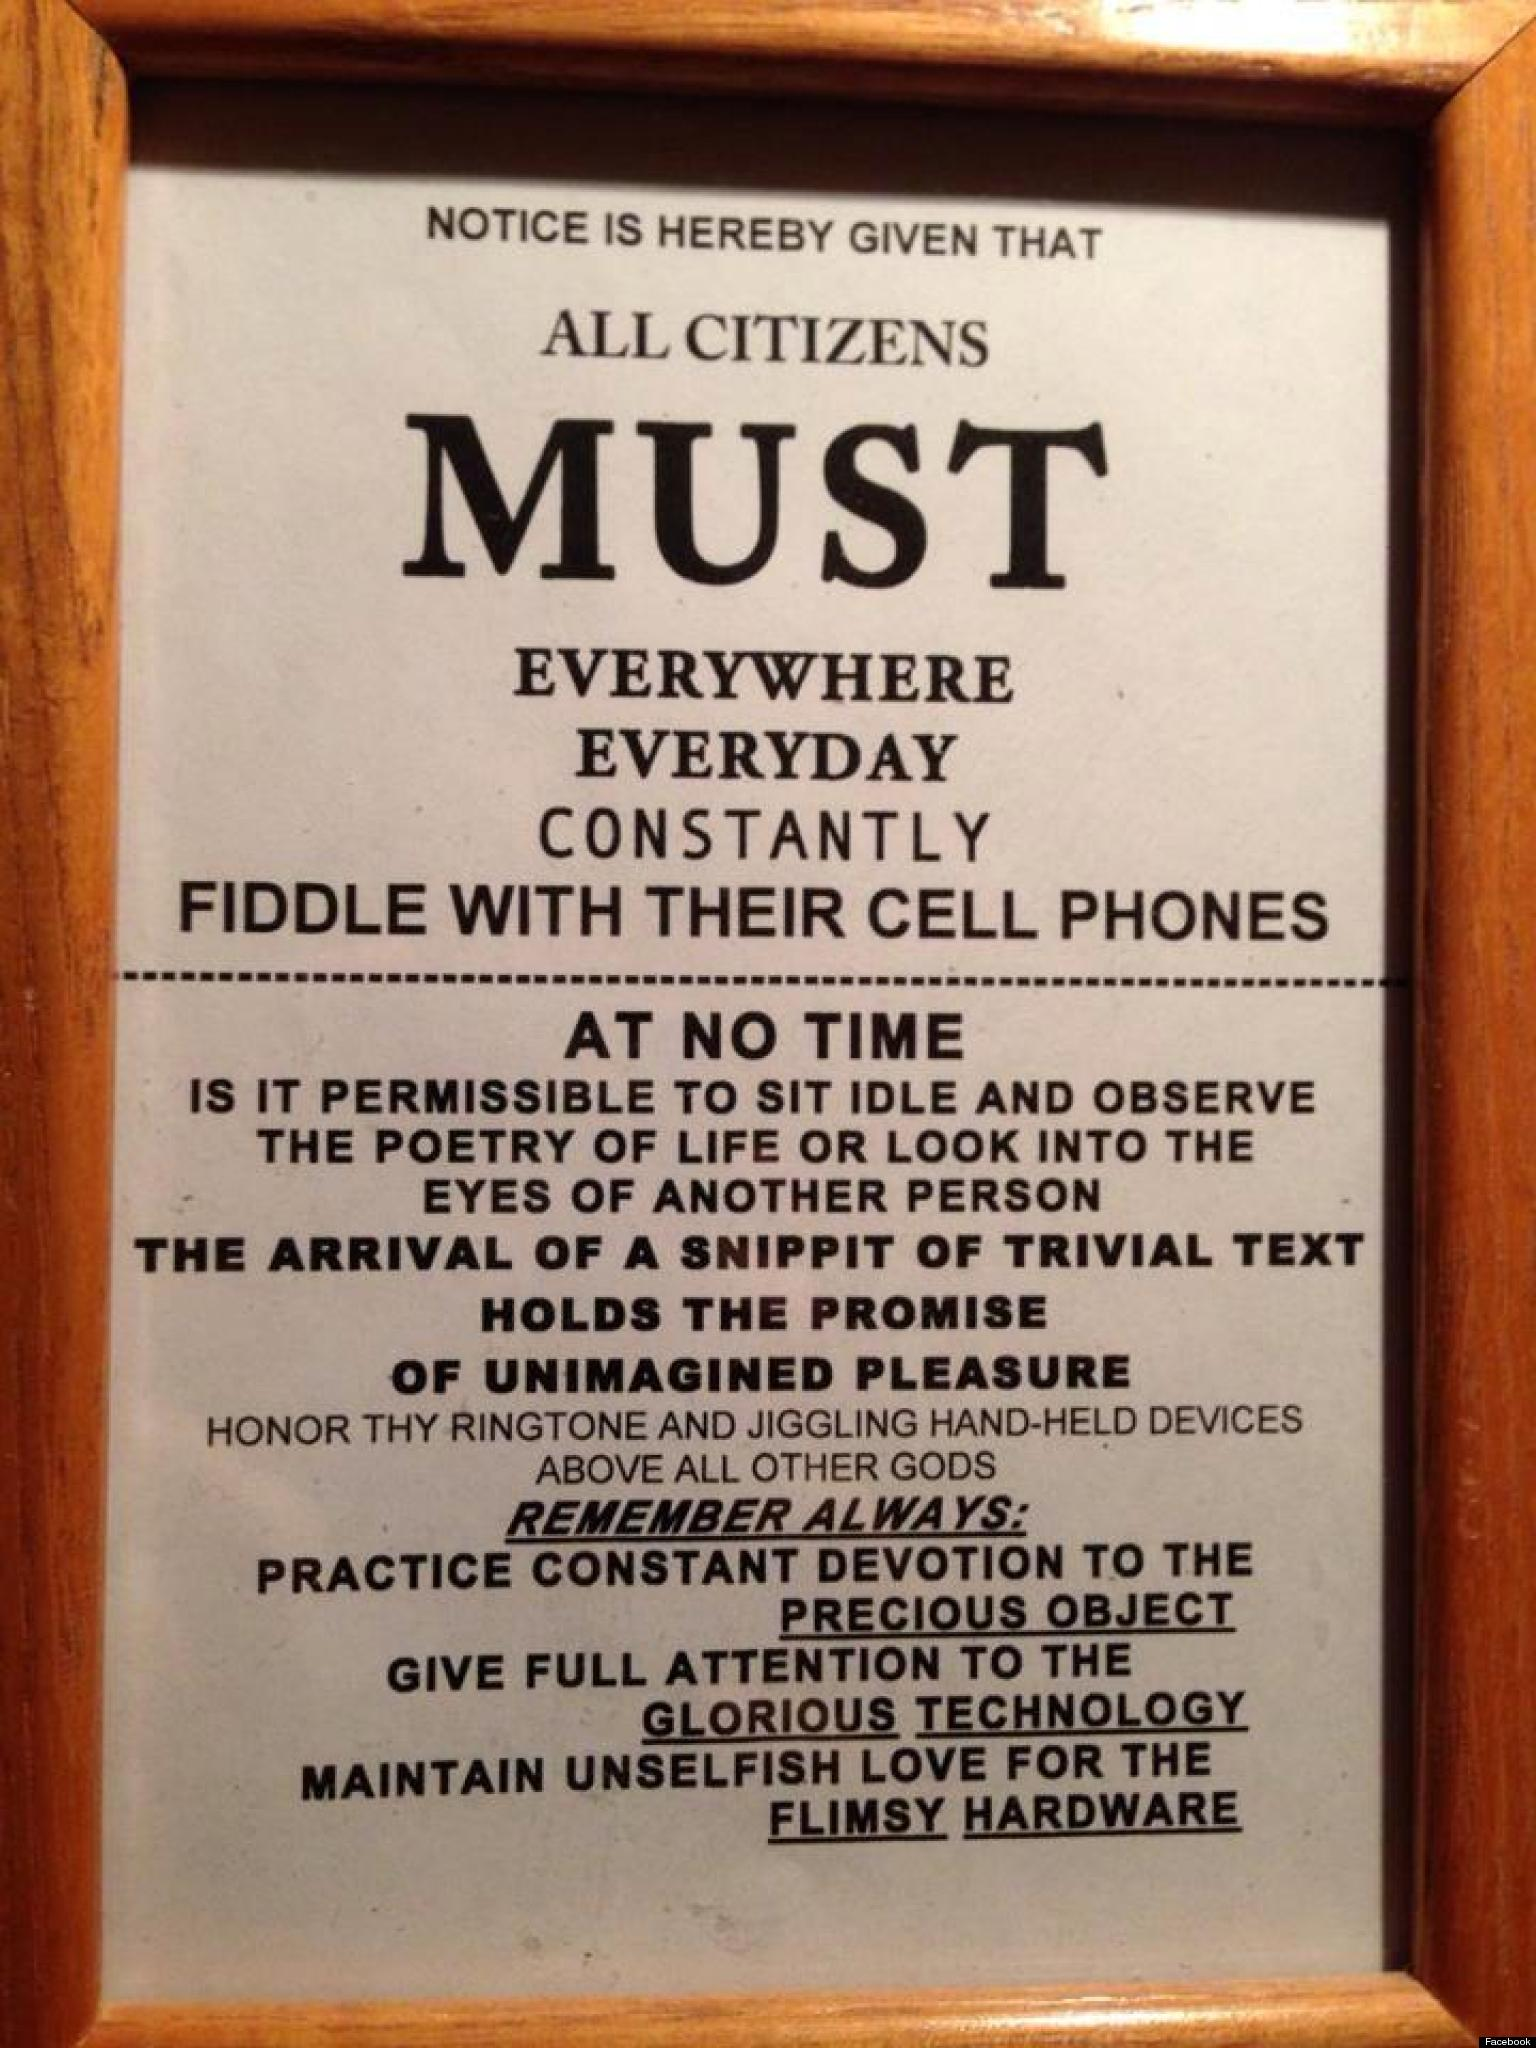 u0026 39 all citizens must fiddle with their cell phones u0026 39  sign